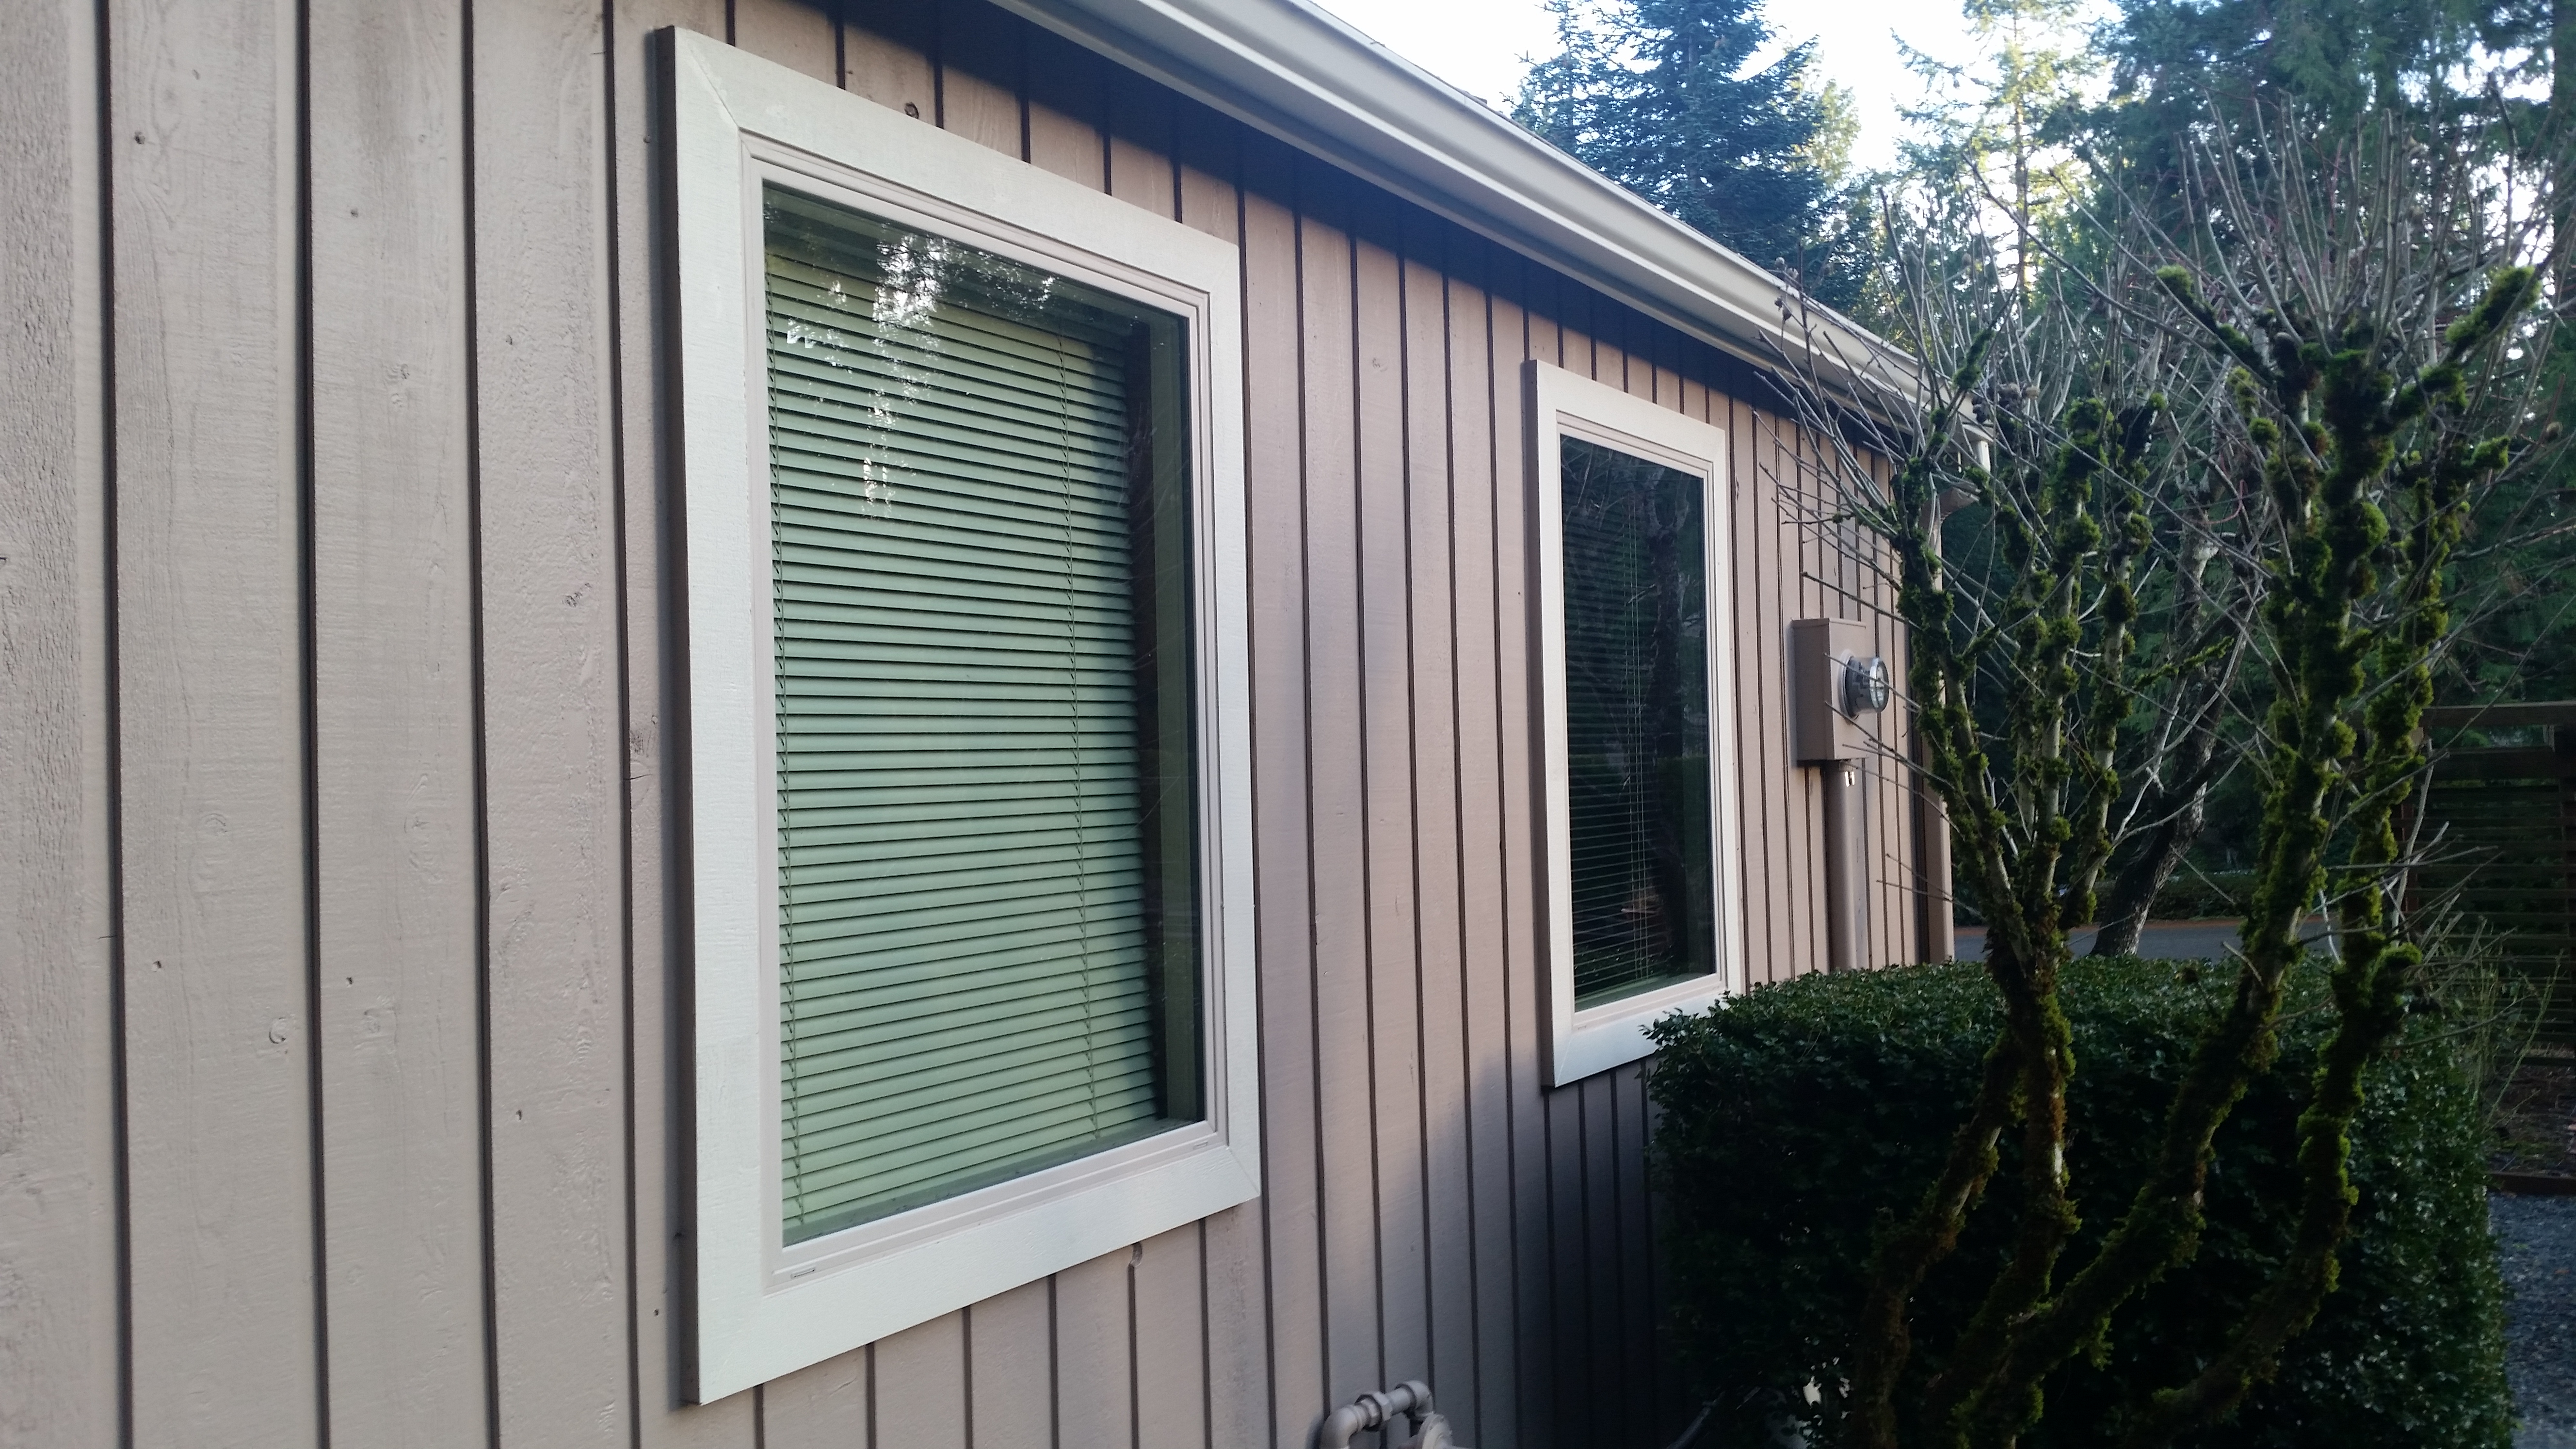 Reasons to buy energy efficient windows from imglass my for Energy windows